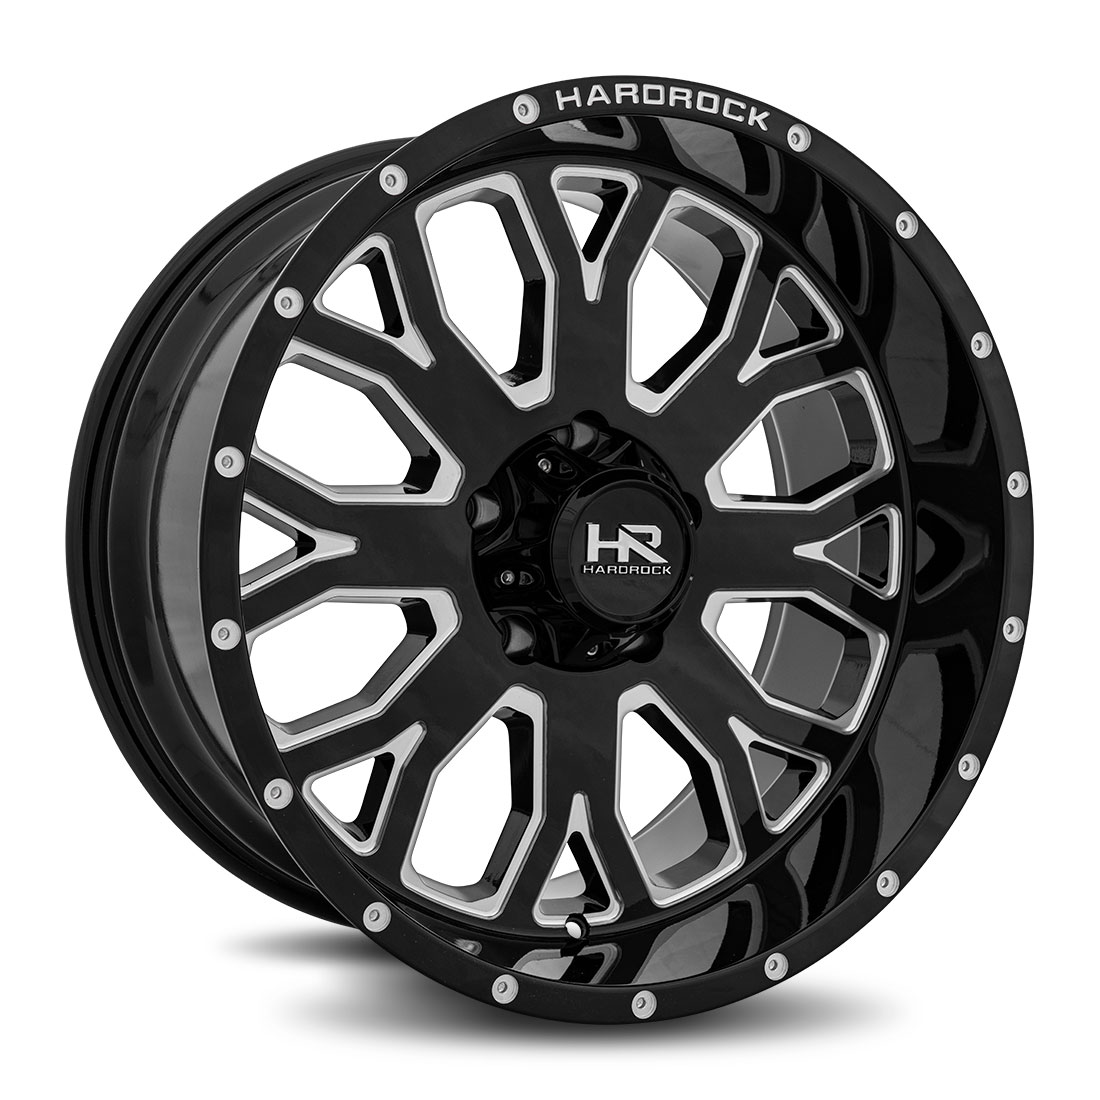 Hardrock Offroad Wheels H504 Slammer-Xposed - Gloss Black Milled - 20x10